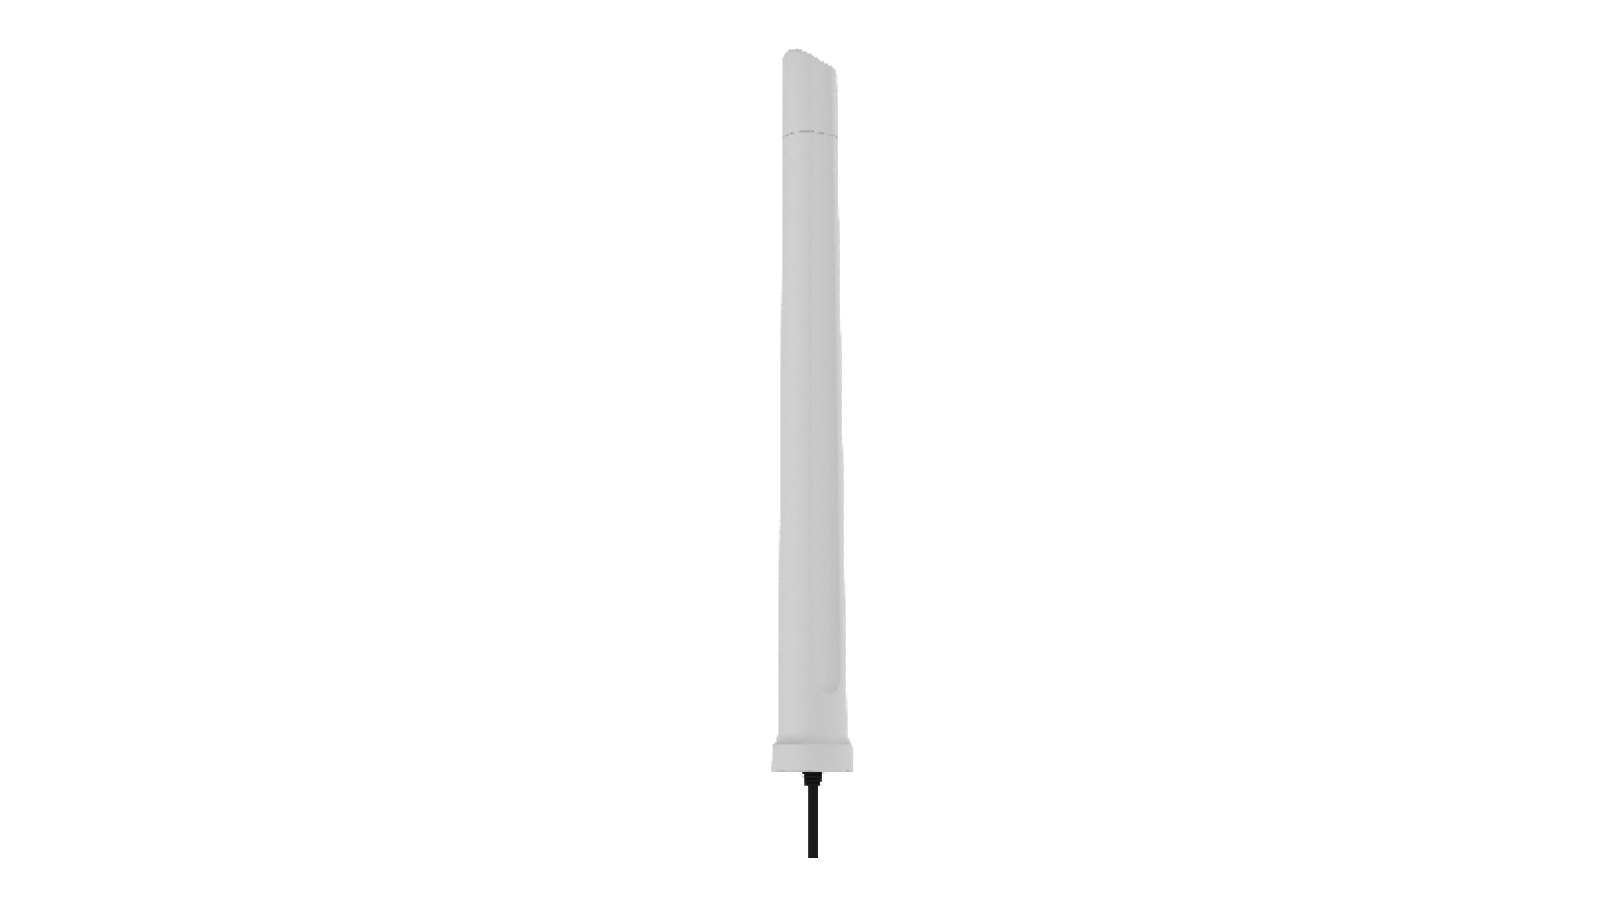 Poynting OMNI-600-02 wideband antenne 2x SMA(m) 5m 2x2 MiMo | 2G antennes, 3G antennes, 4G antennes, LoRa antennes, NB IoT antennes, Sigfox Antennes | Product | MCS